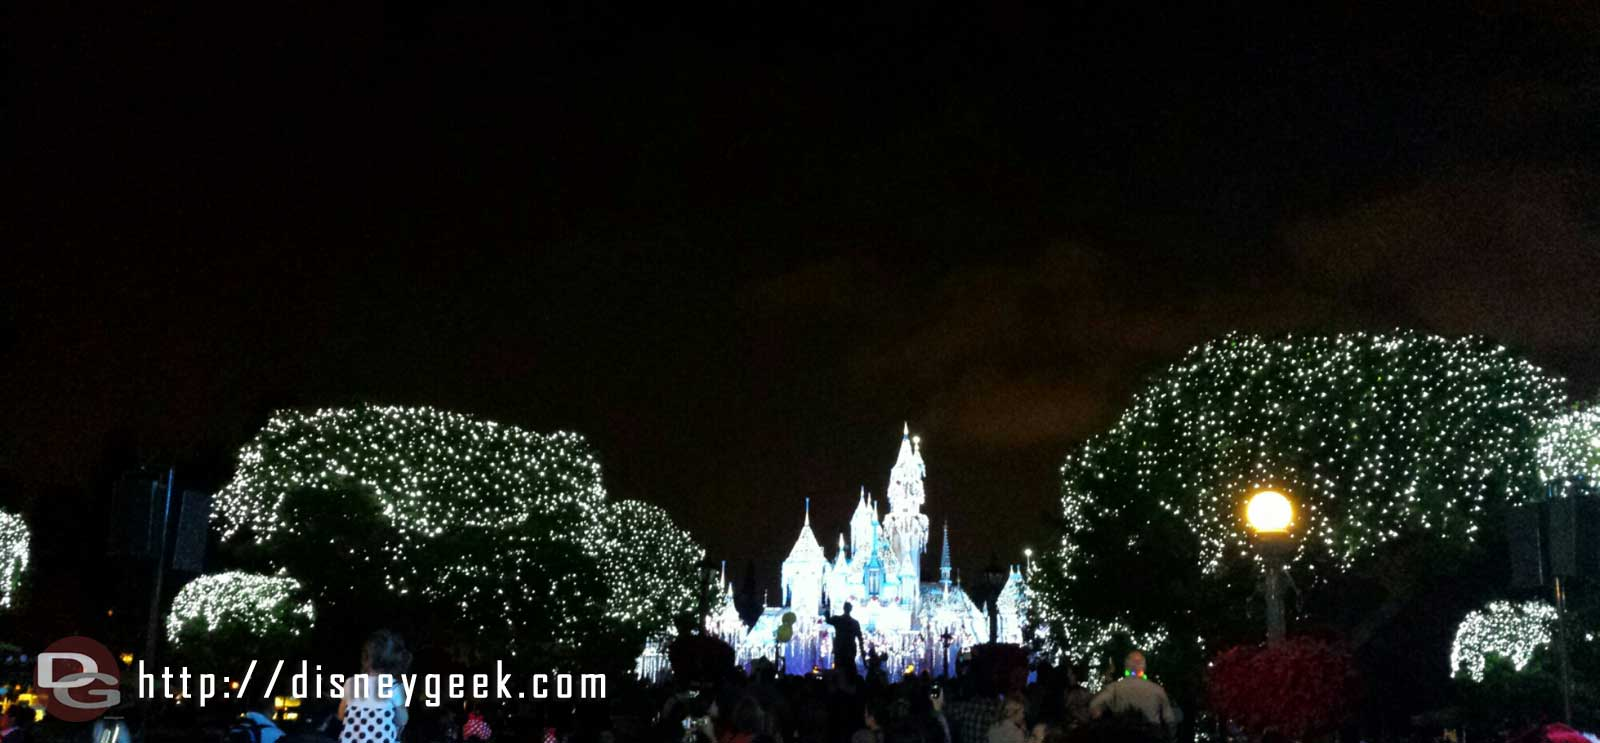 #Disneyland Sleeping Beauty Castle Wintertime Enchantment moment